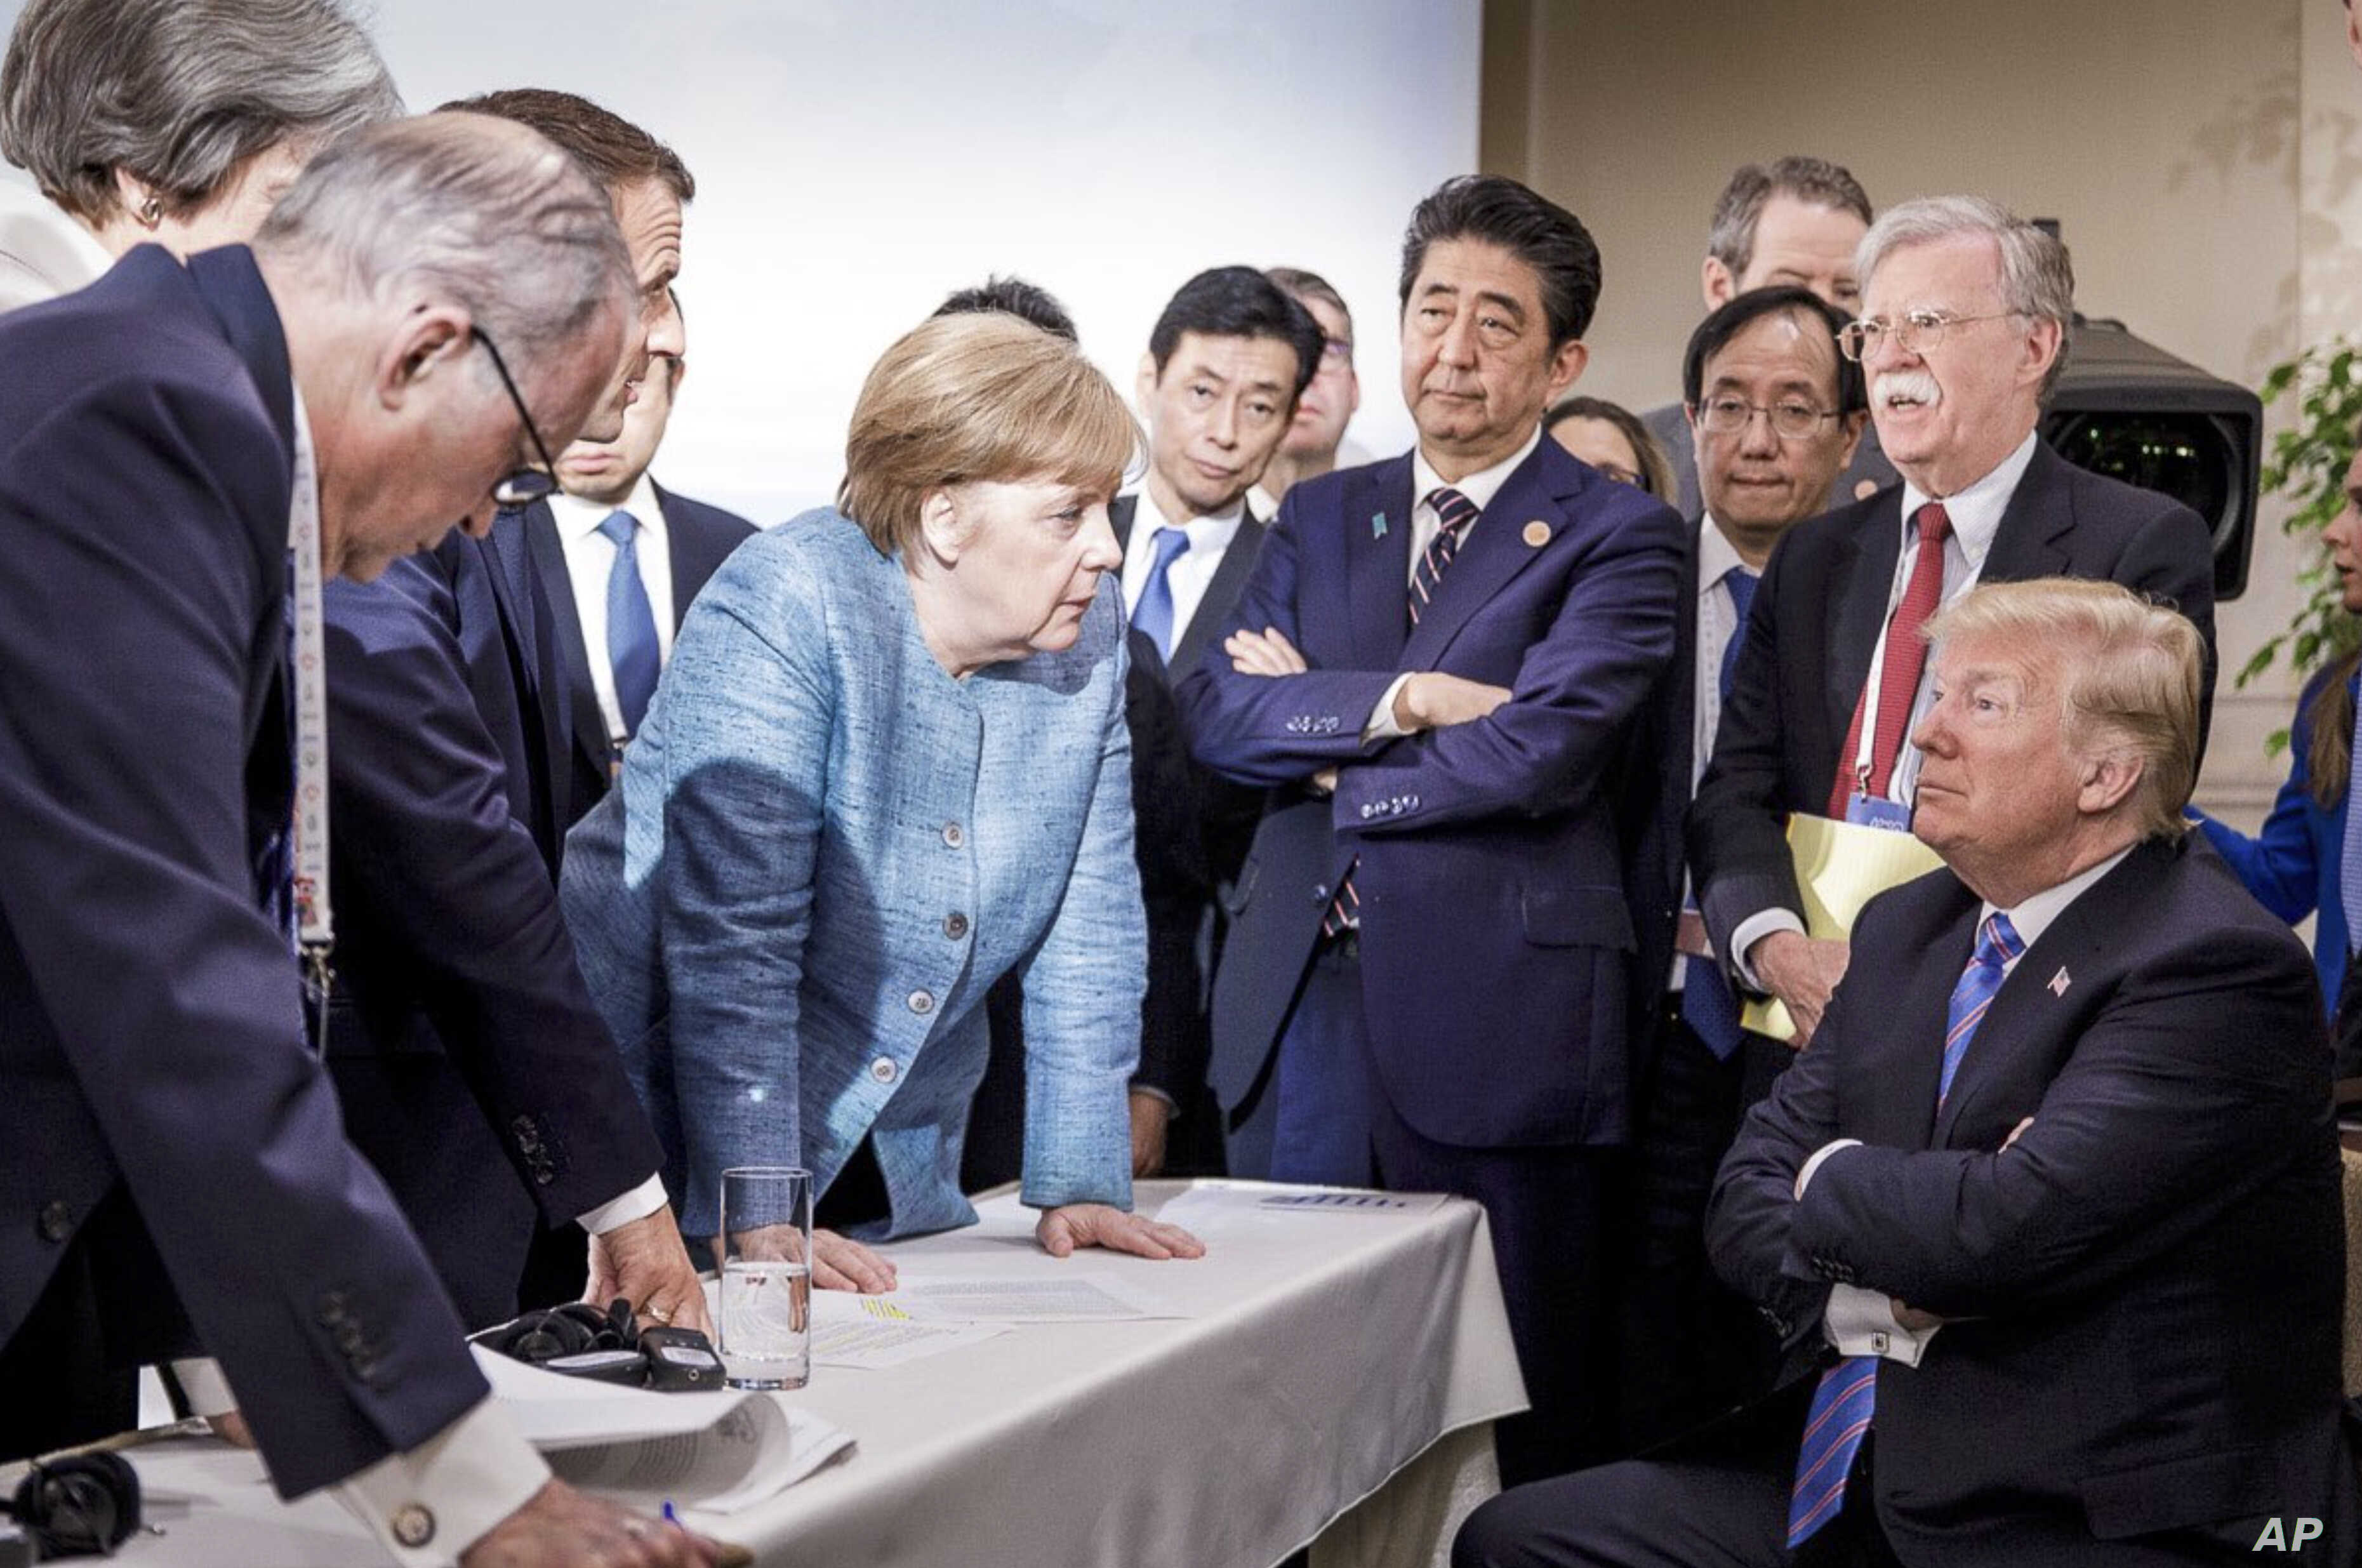 In this photo made available by the German Federal Government, German Chancellor Angela Merkel, center, speaks with U.S. President Donald Trump, seated at right, during the G7 Leaders Summit in La Malbaie, Quebec, Canada, on June 9, 2018.